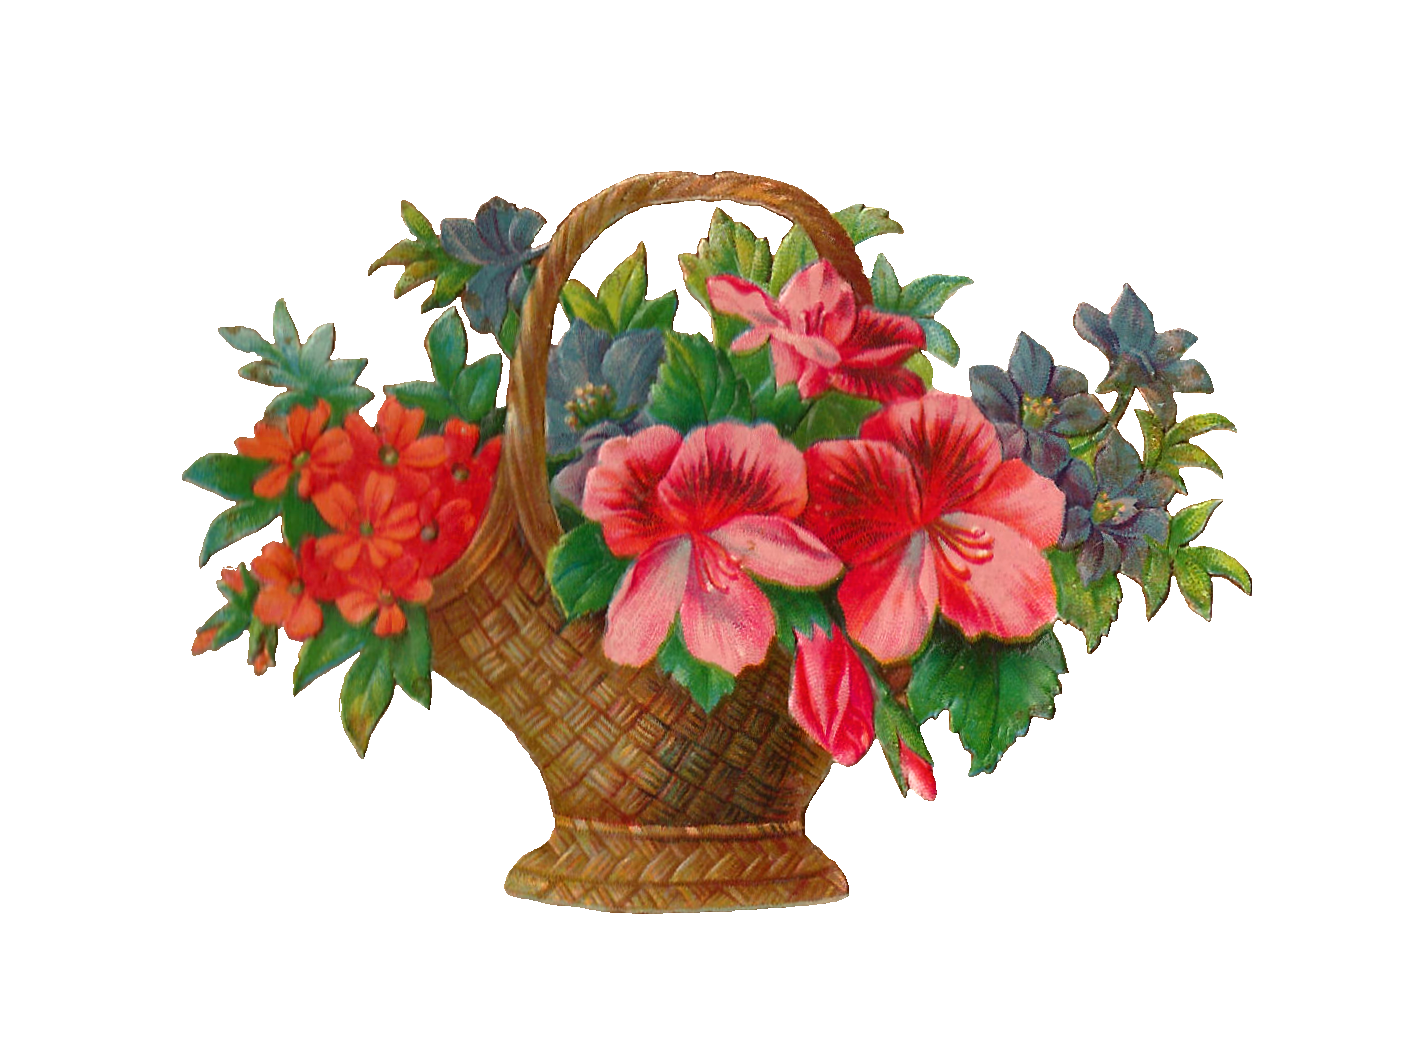 Images Of Flower Baskets : Antique images free flower stock image